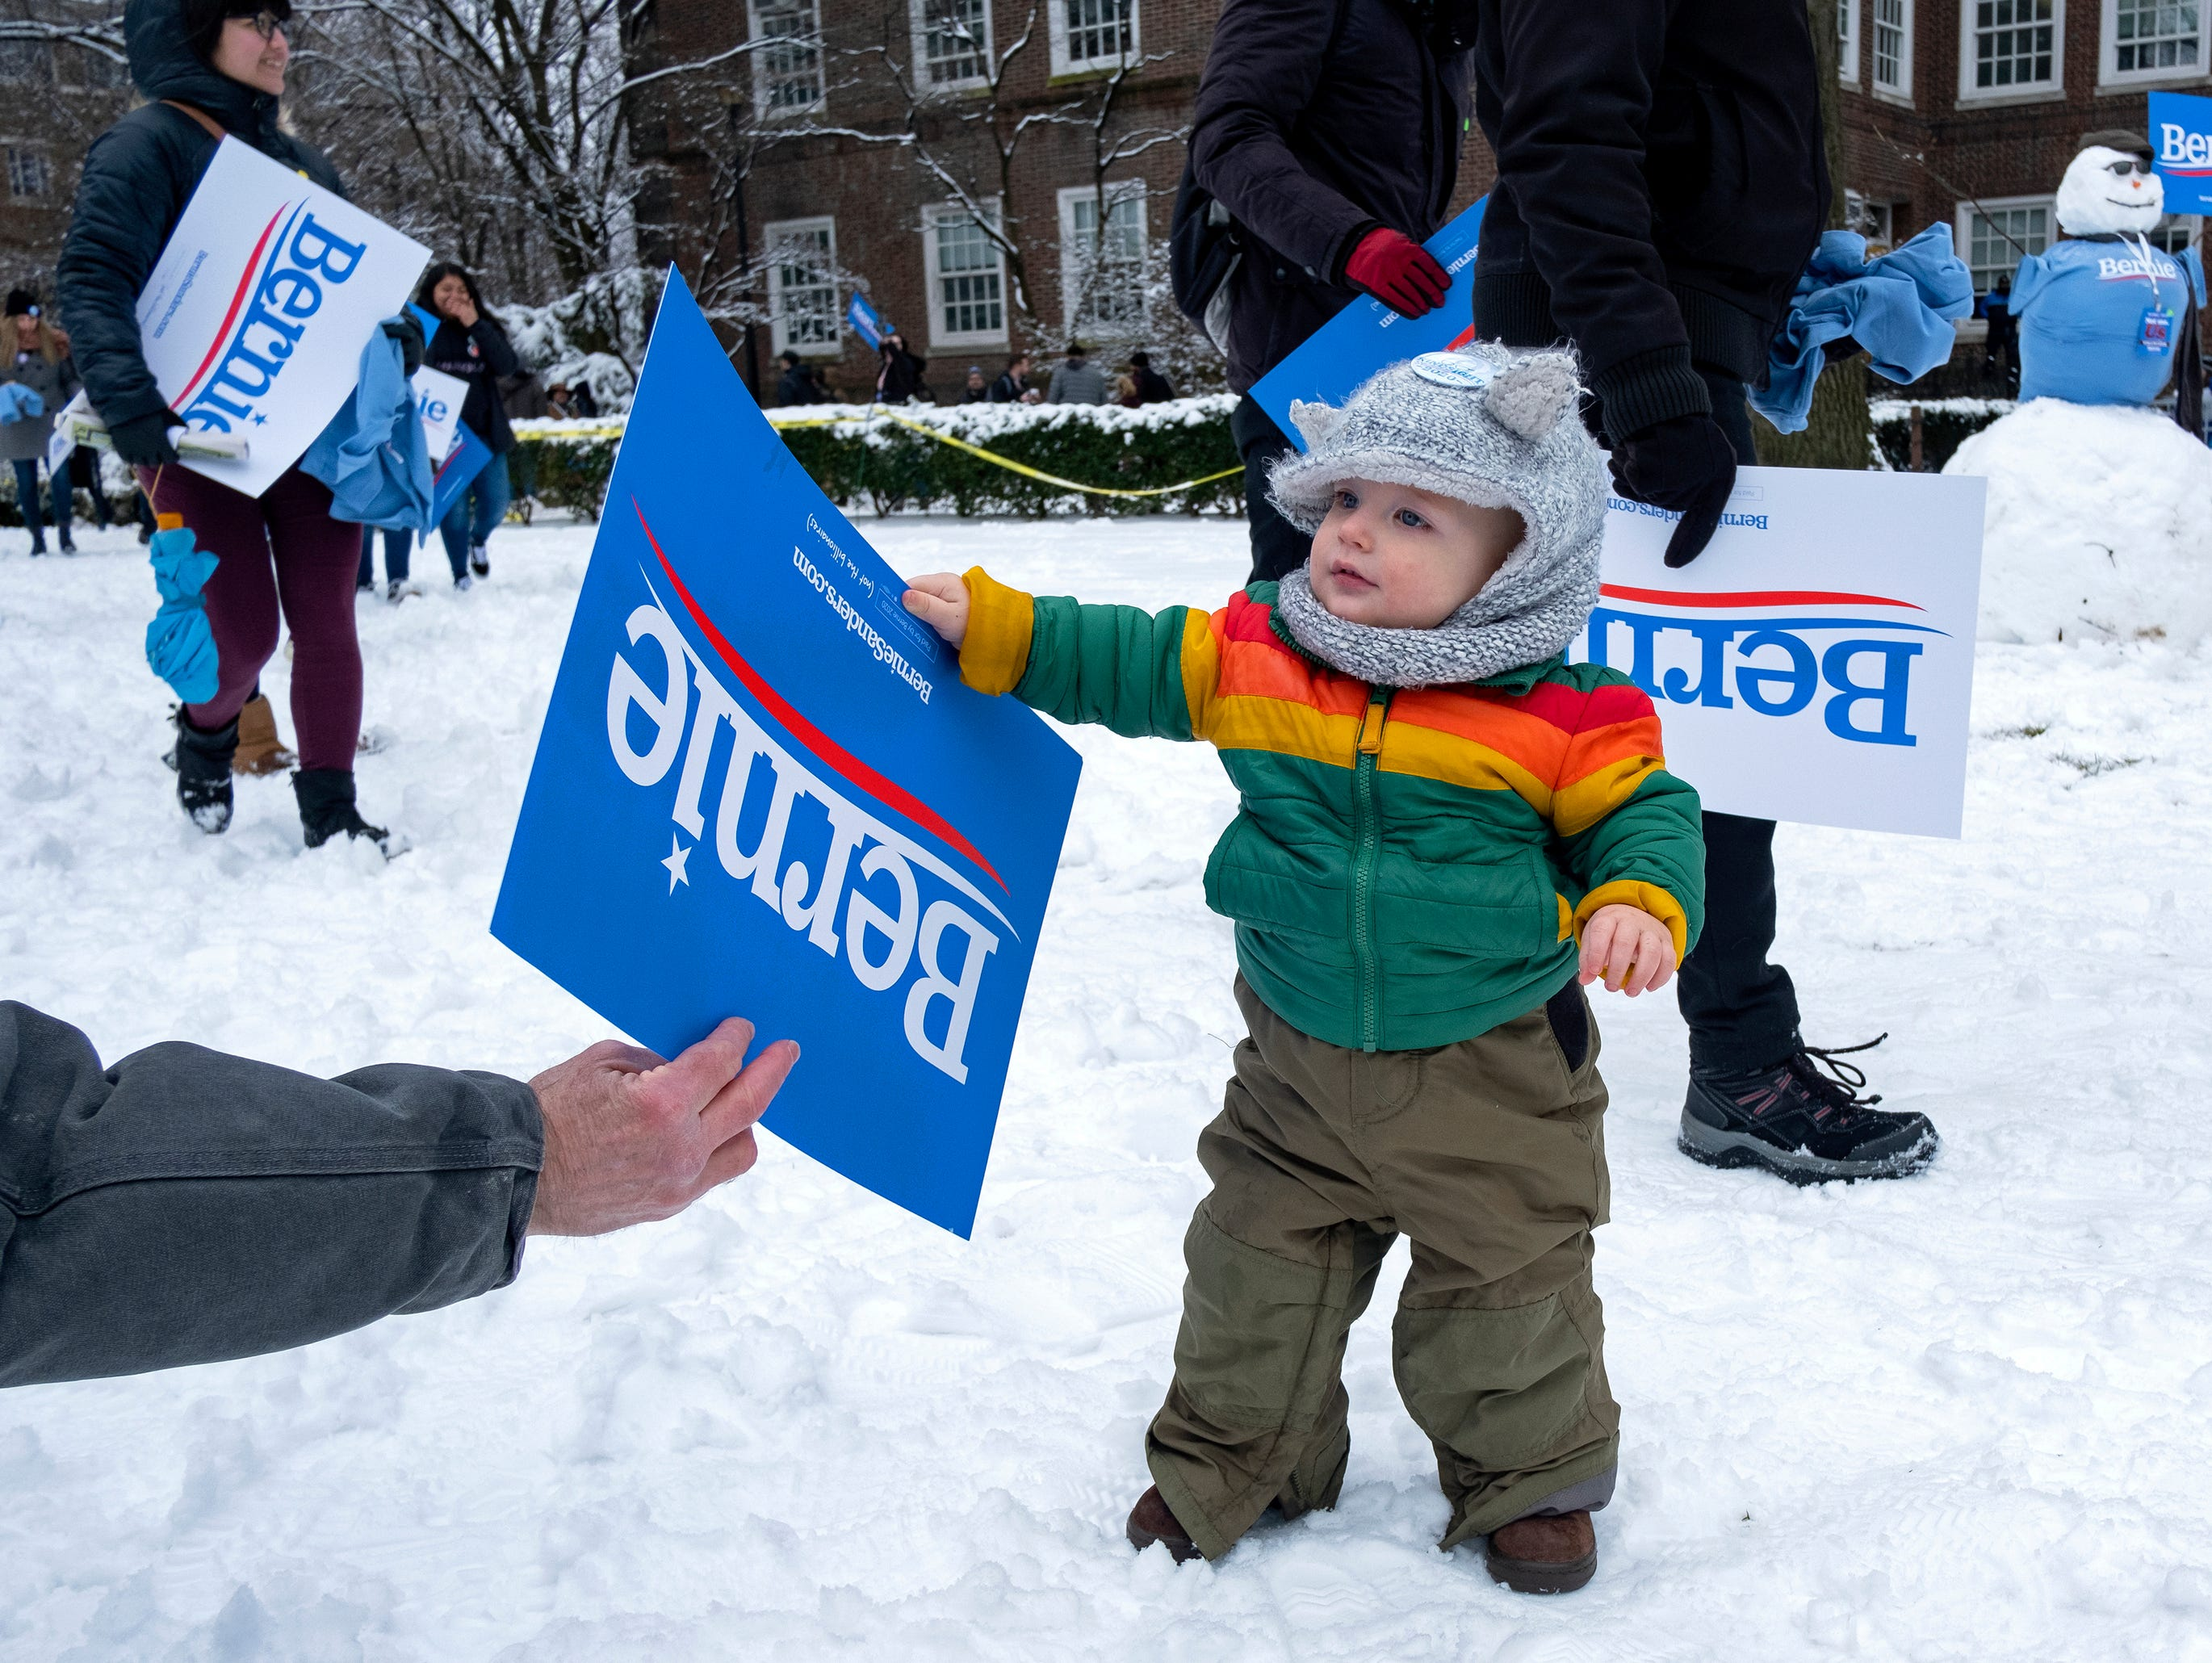 Cal Bonavita, 15 months, of New York, is handed a campaign before a rally for Sen. Bernie Sanders, I-Vt., as Sanders kicks off his political campaign Saturday, March 2, 2019, in the Brooklyn borough of New York as he makes a bid for President of the United States in 2020, his second campaign for the office. (AP Photo/Craig Ruttle)